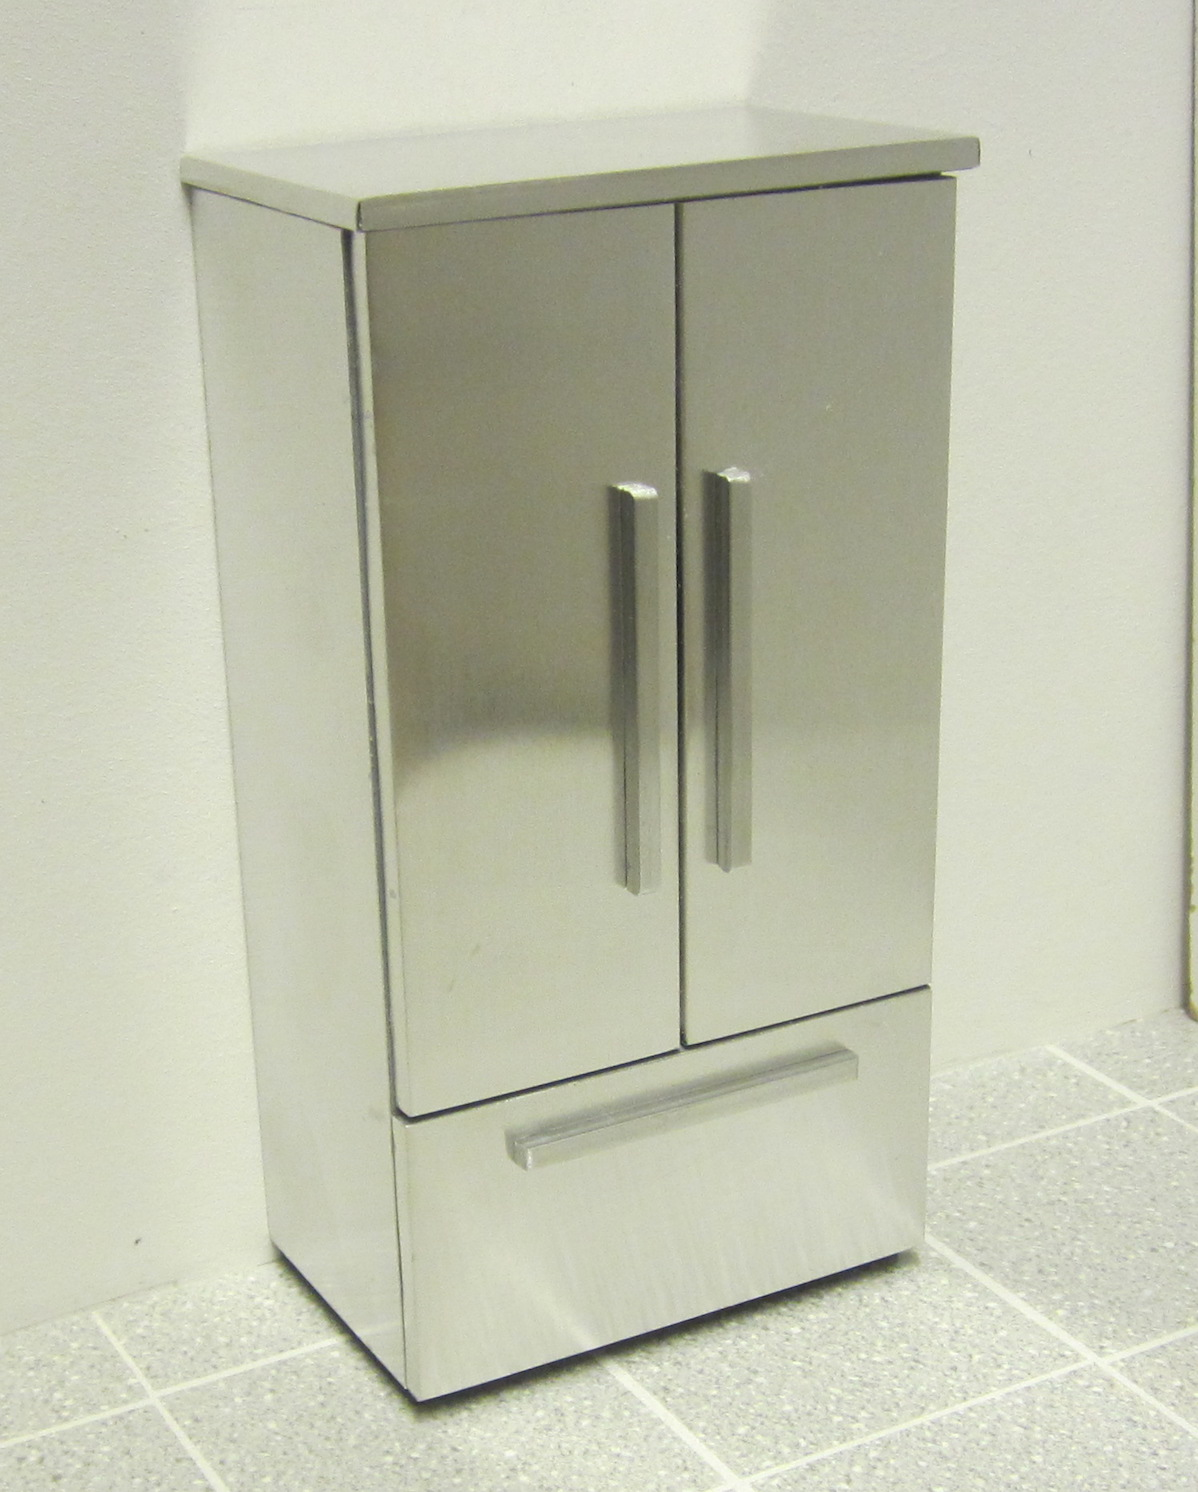 ELF Dummy American fridge - readybuilt